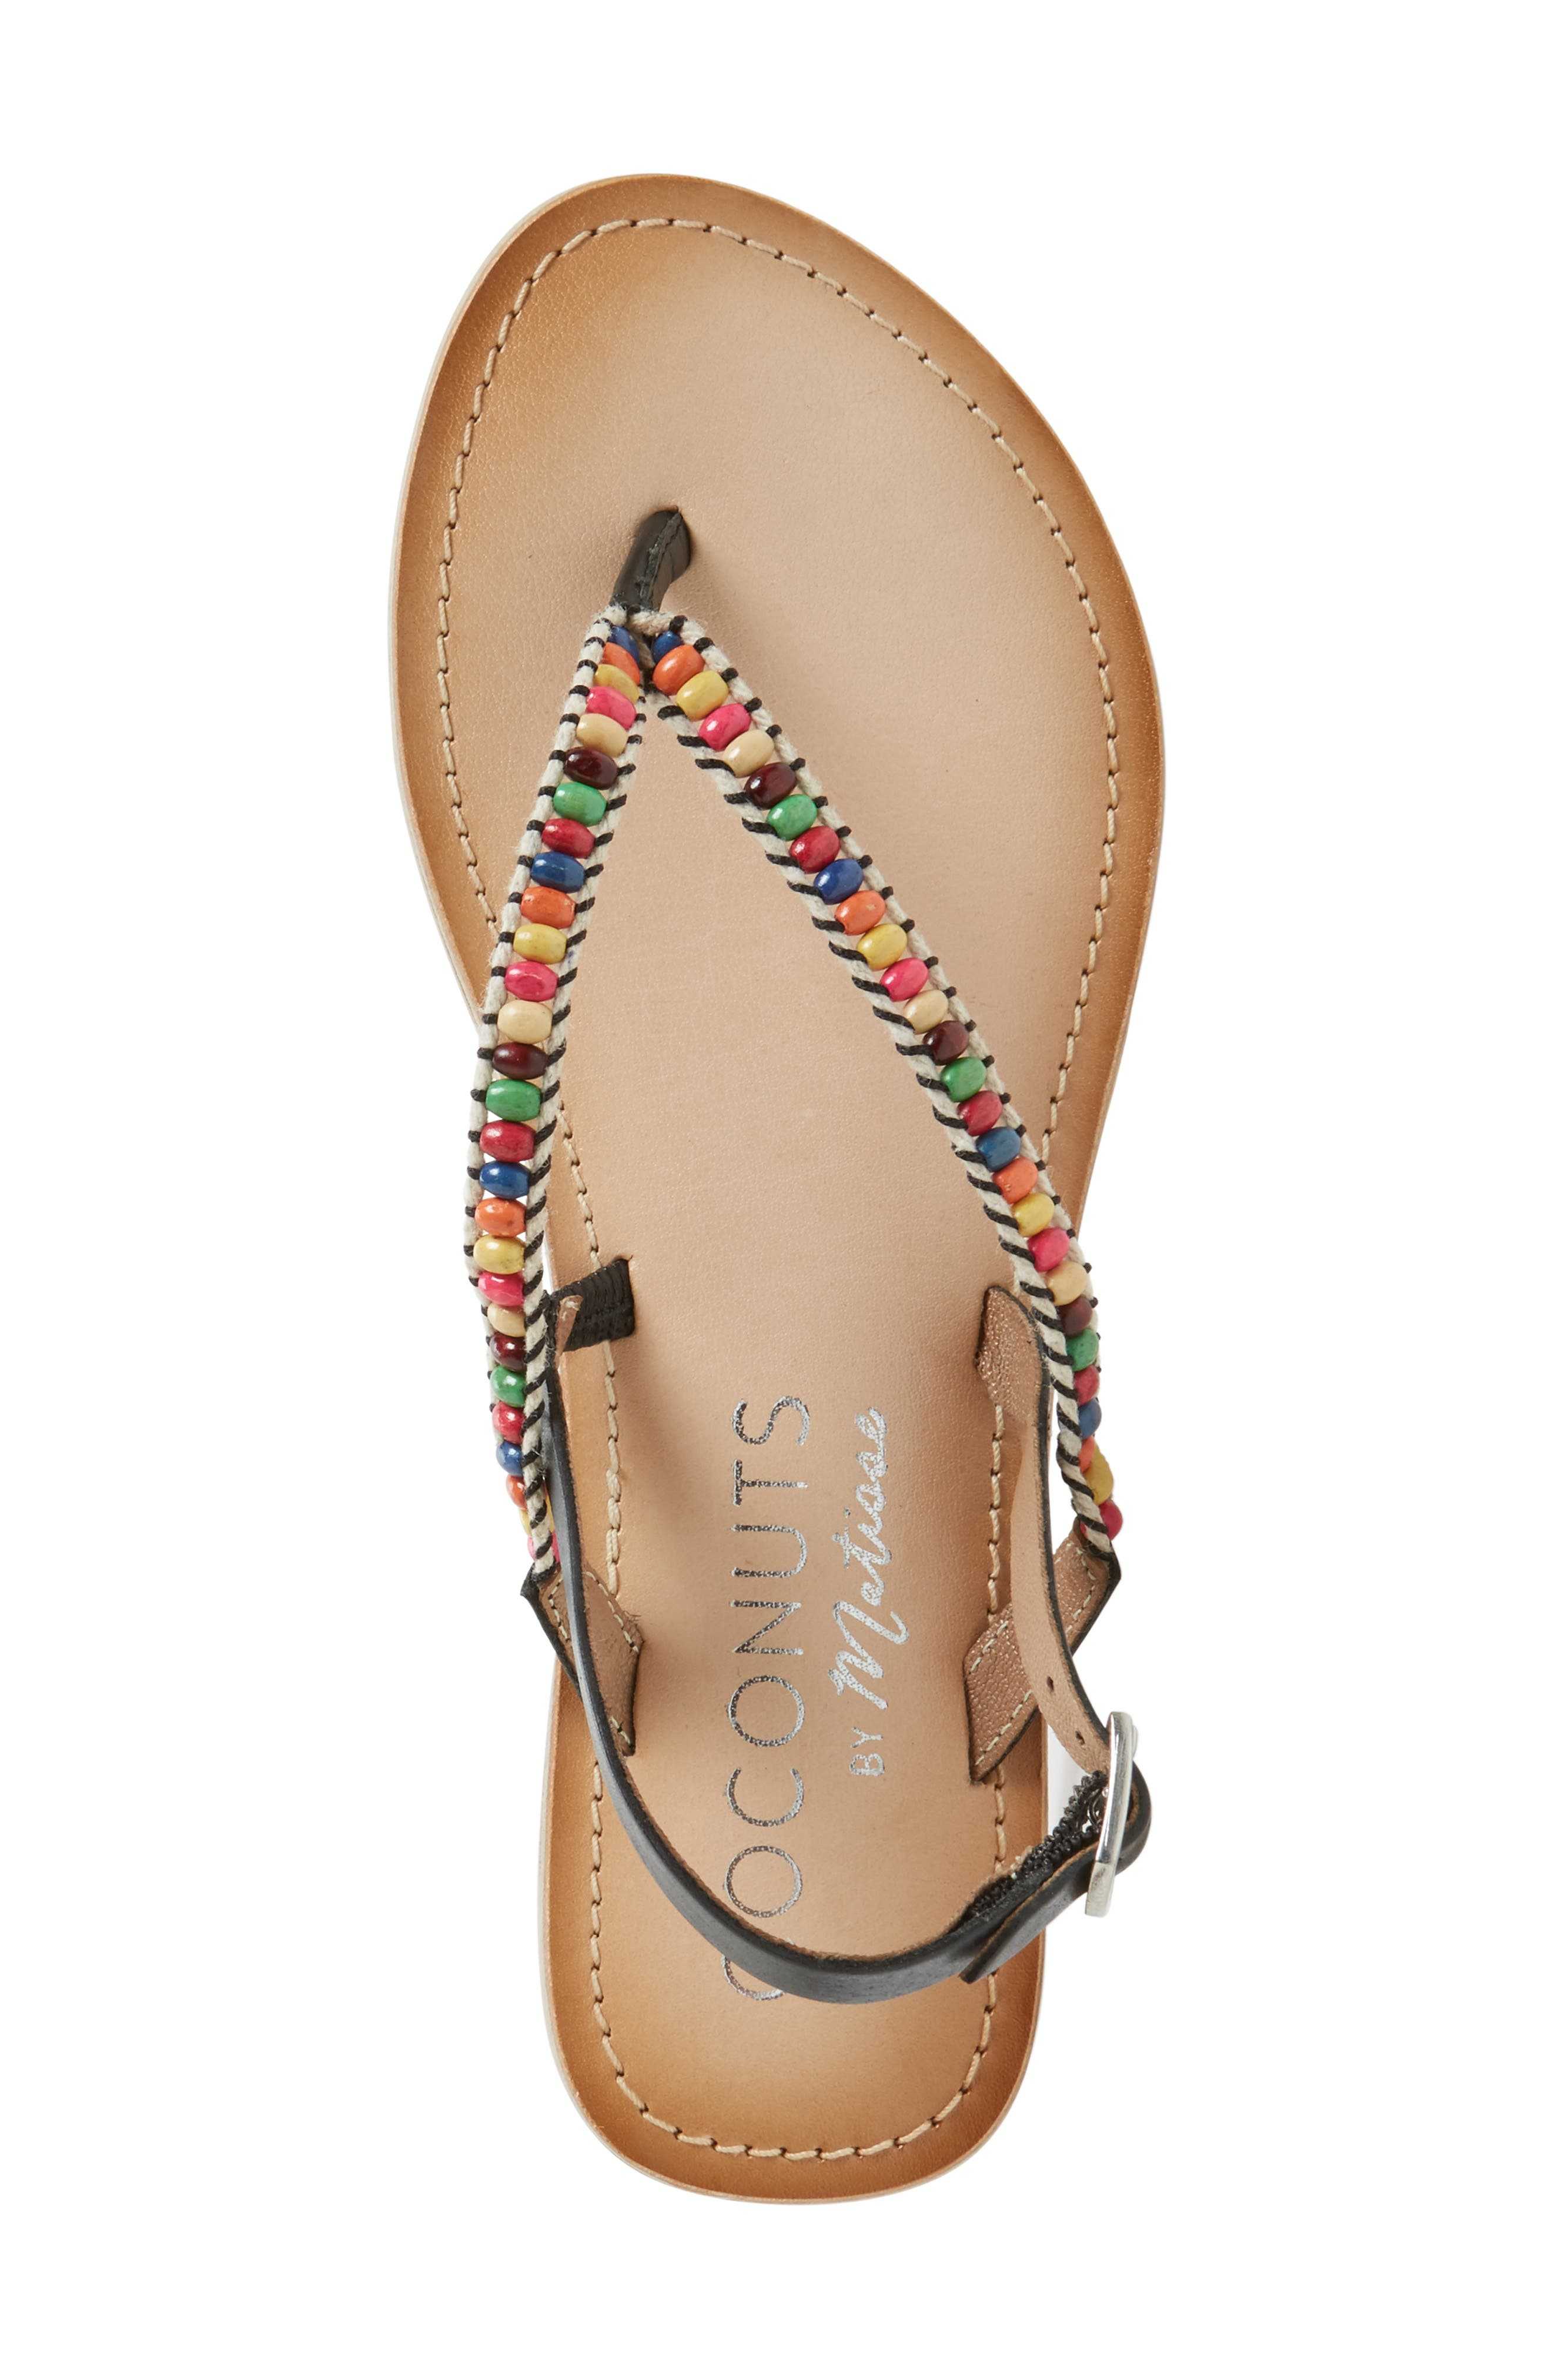 Coconuts by Matisse Celebration Beaded Sandal,                             Alternate thumbnail 3, color,                             001